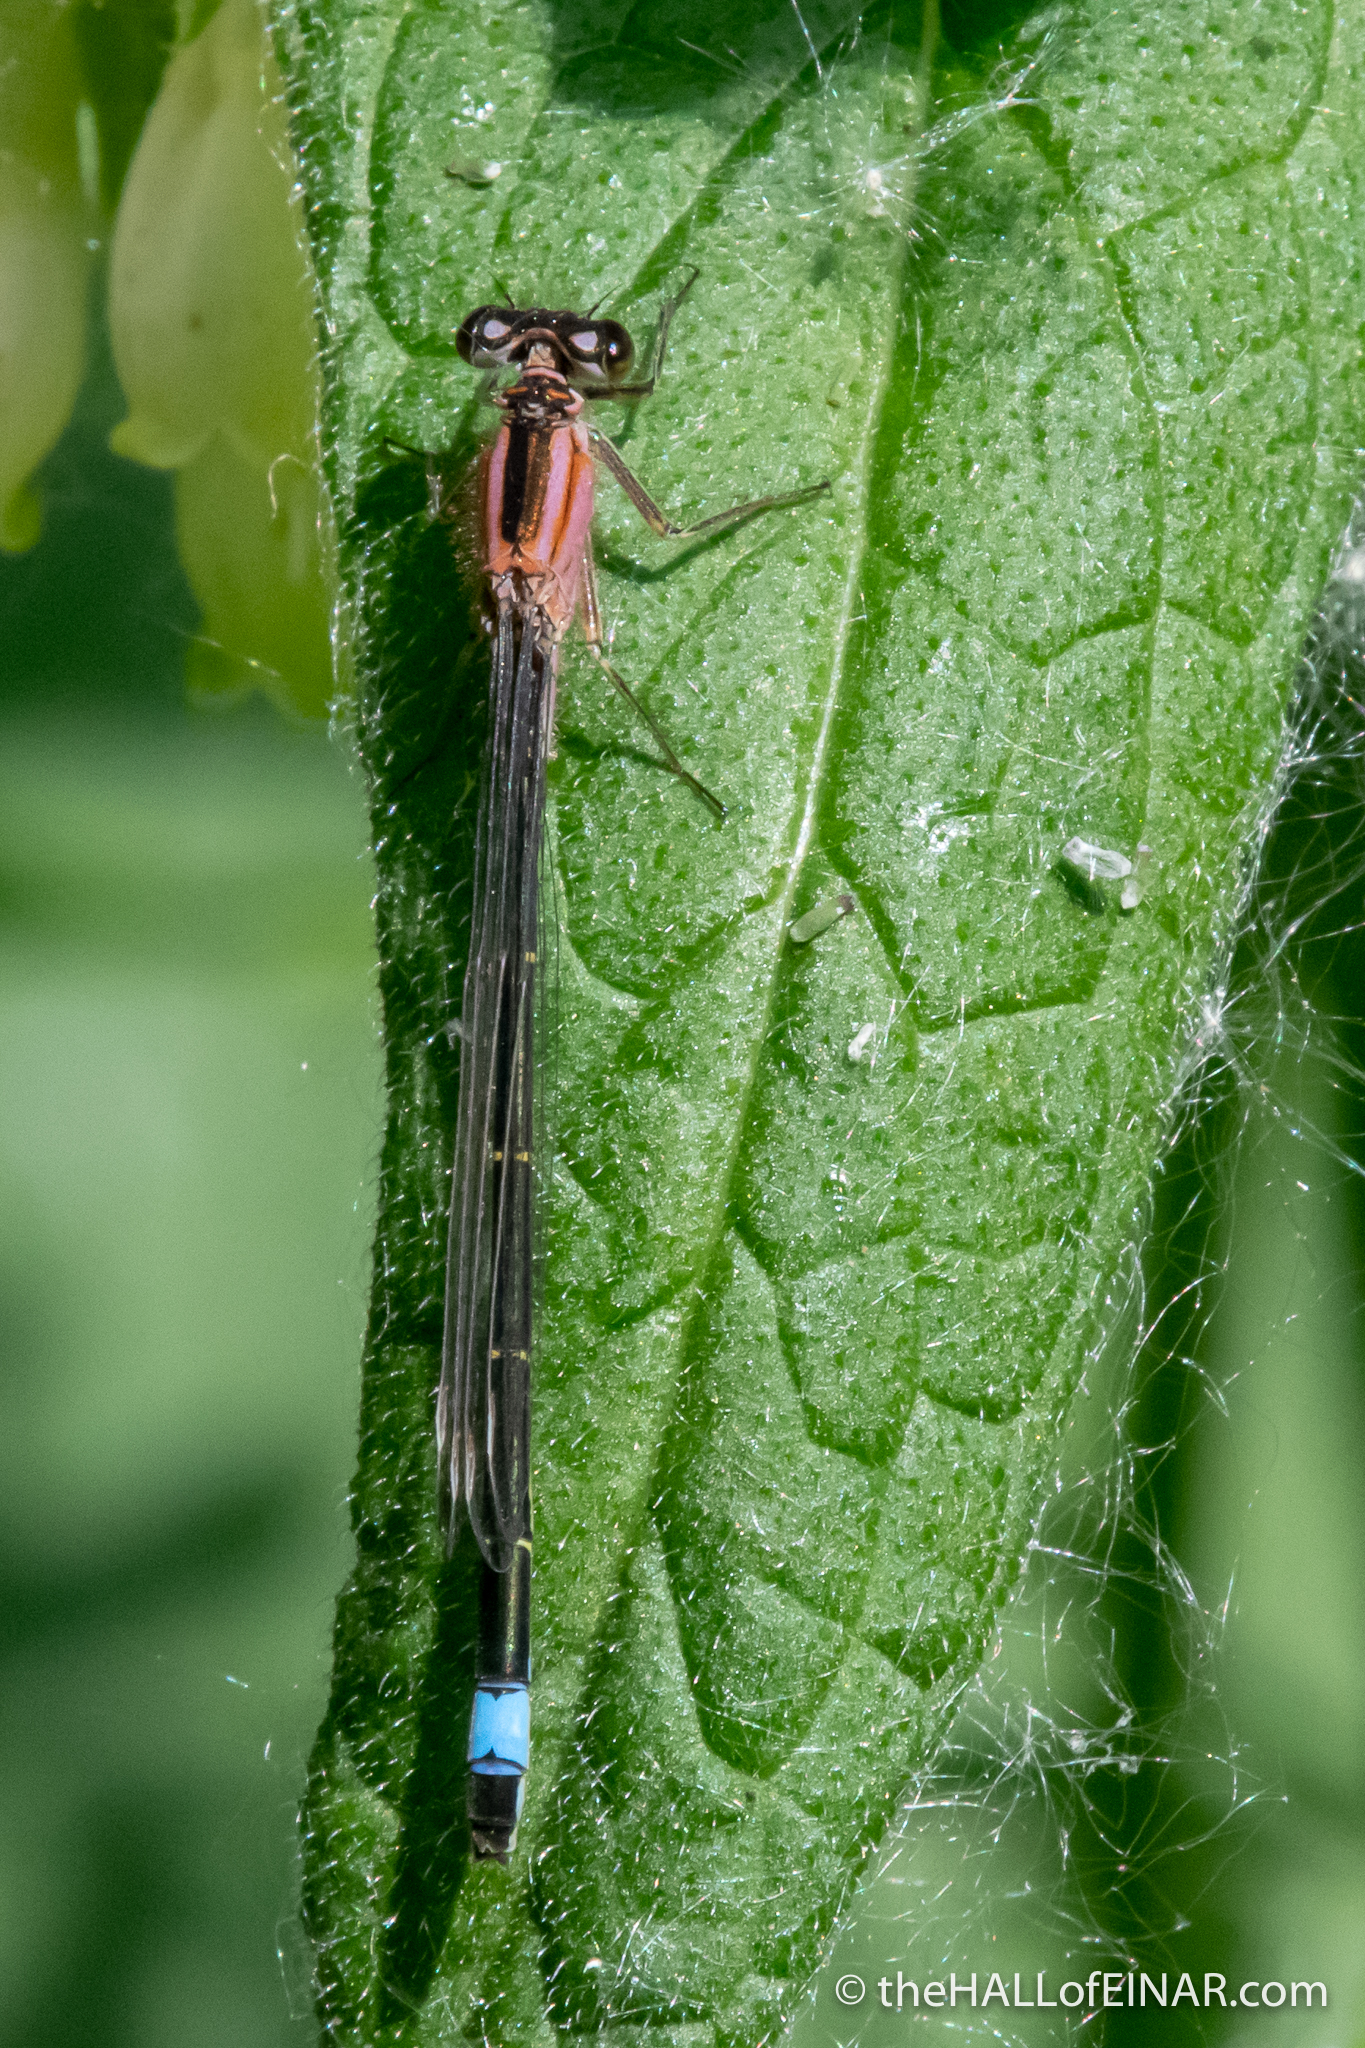 Blue-tailed Damselfly - Ham Wall - The Hall of Einar - photograph (c) David Bailey (not the)